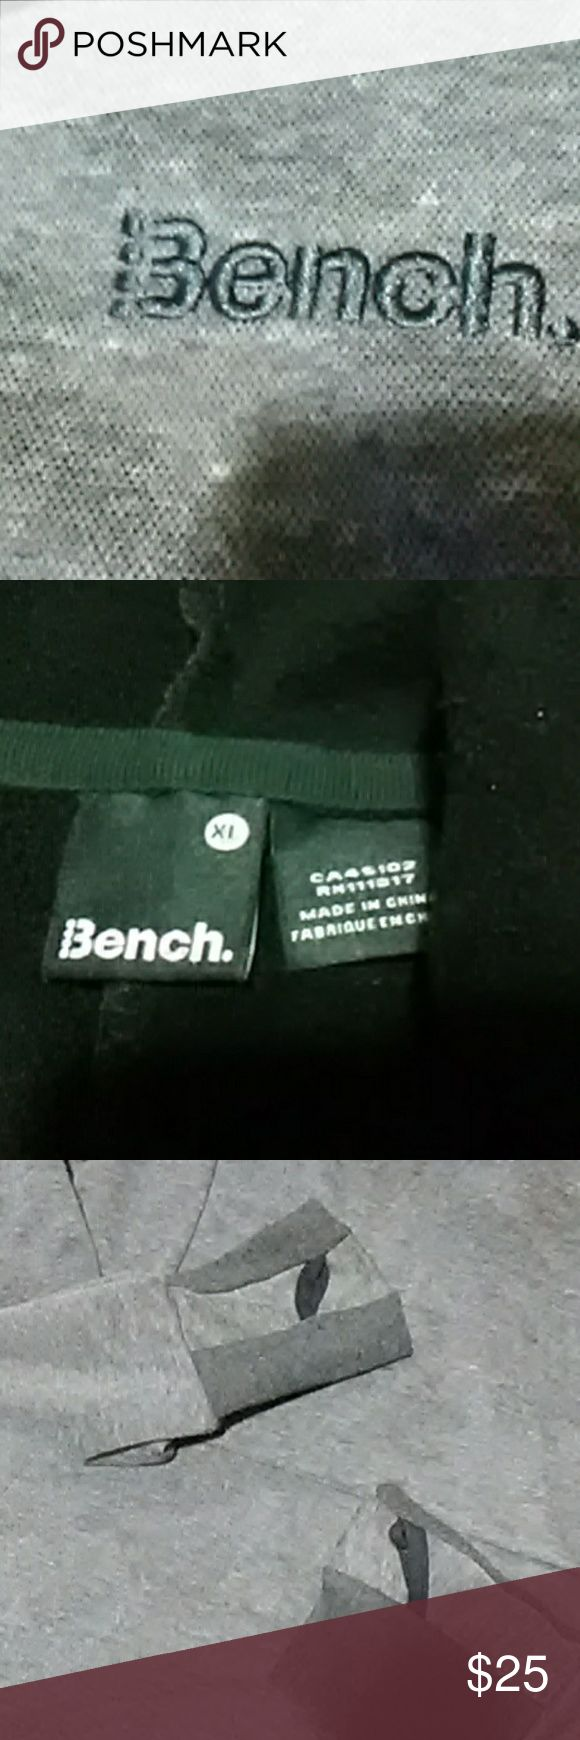 Bench hoodie XL Bench hoodie  extra large The hood is actually a neck and head gator for bundling up With thumb holes in sleeves Very soft and warm Bench Tops Sweatshirts & Hoodies